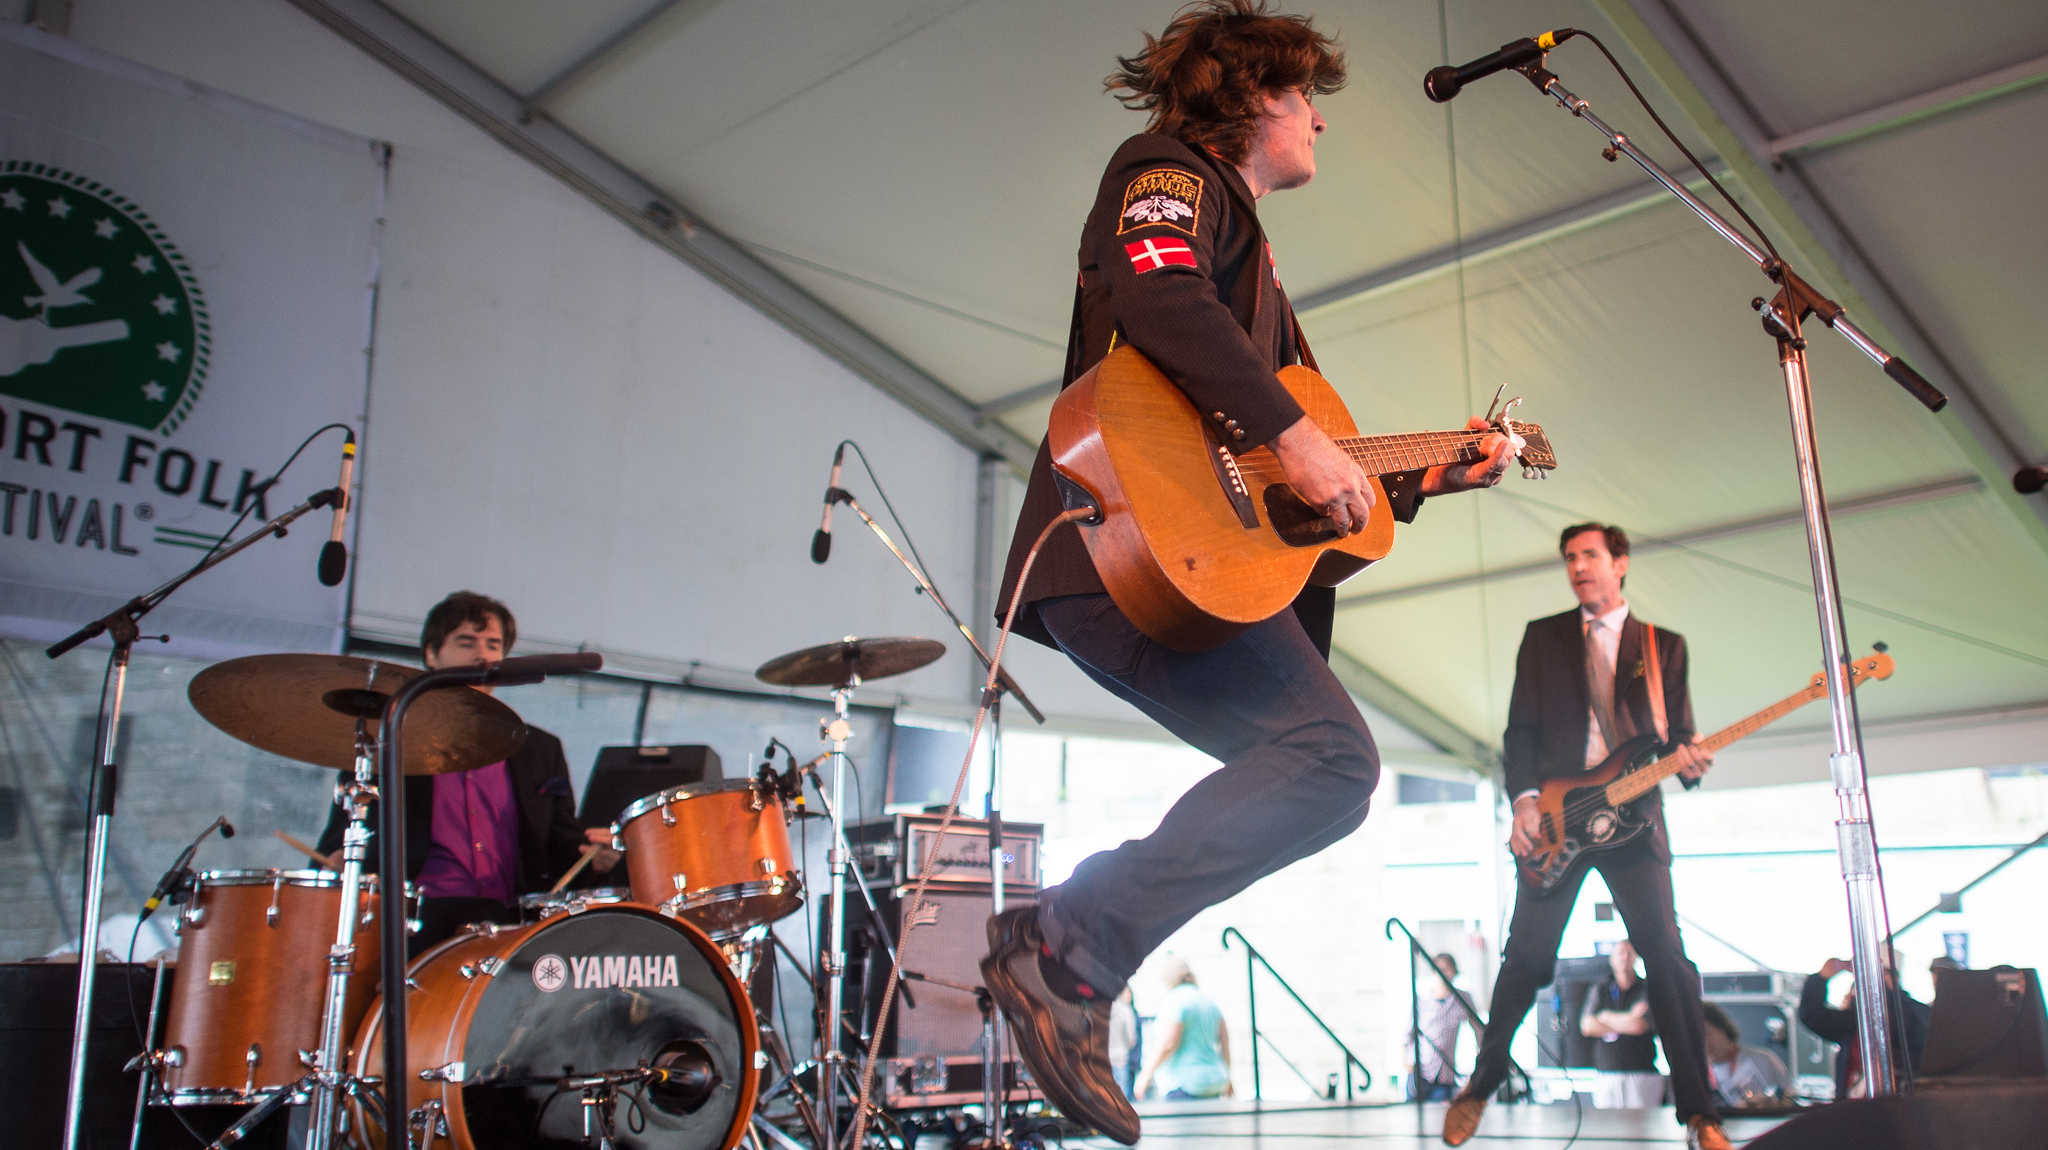 The Mountain Goats performs at the 2013 Newport Folk Festival.